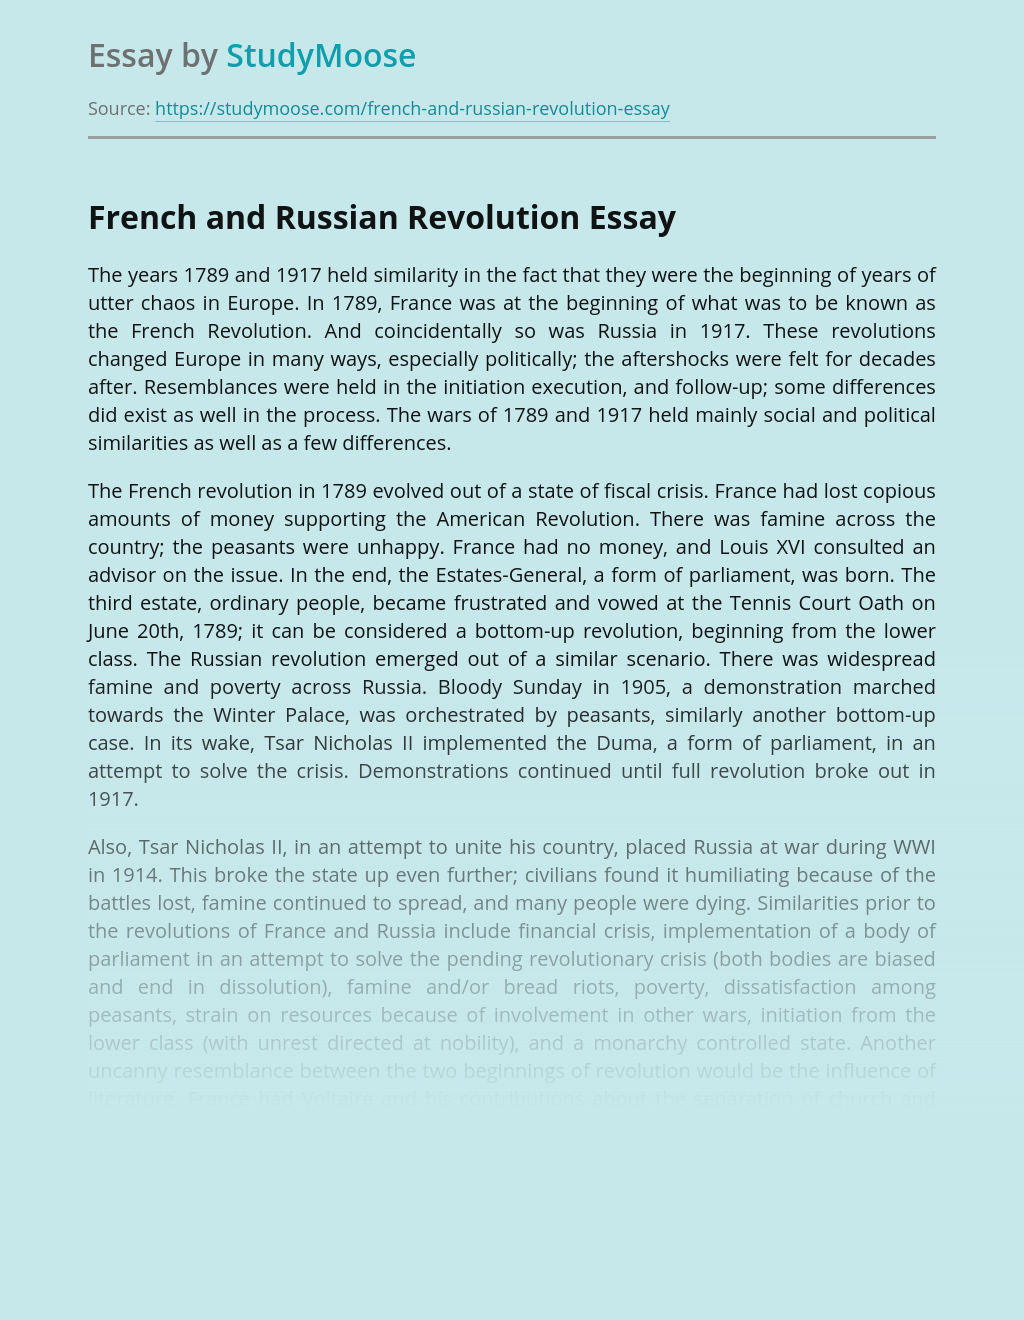 French and Russian Revolution